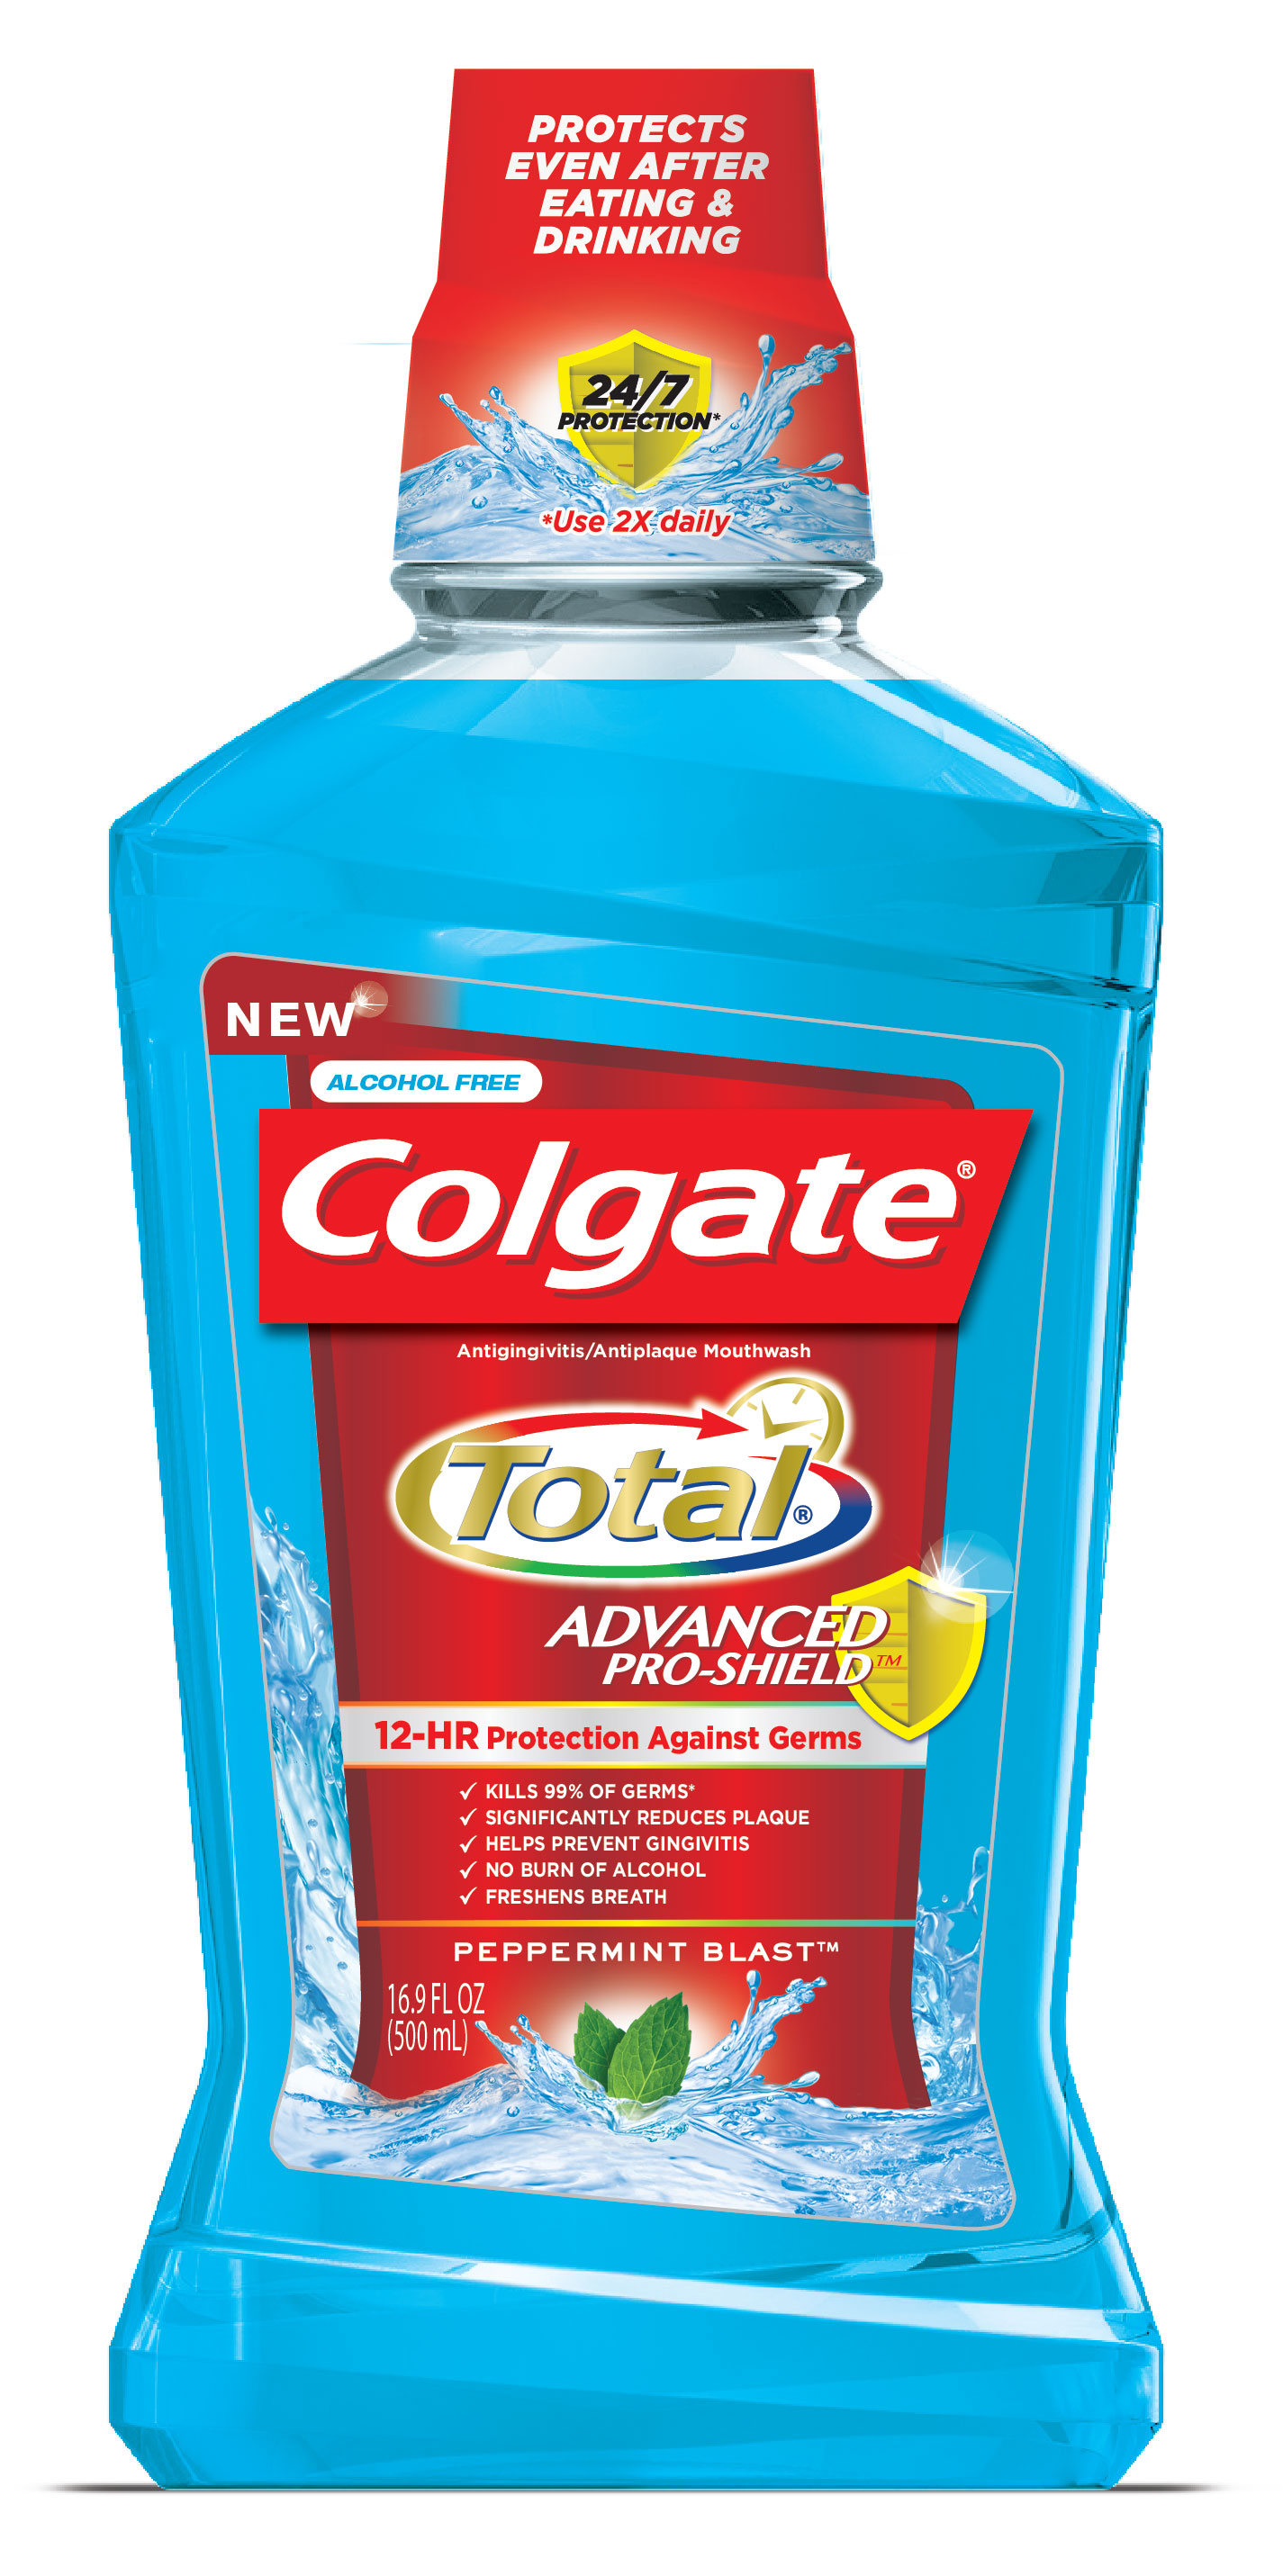 """colgate on operation and total quality management As per feigebaum, """"total quality management is an effective system of integrating the quality development, quality maintenance and quality improvement efforts of various groups in an organization so as to enable marketing, engineering, production and service at the most economical levels which allow for full customer satisfaction."""